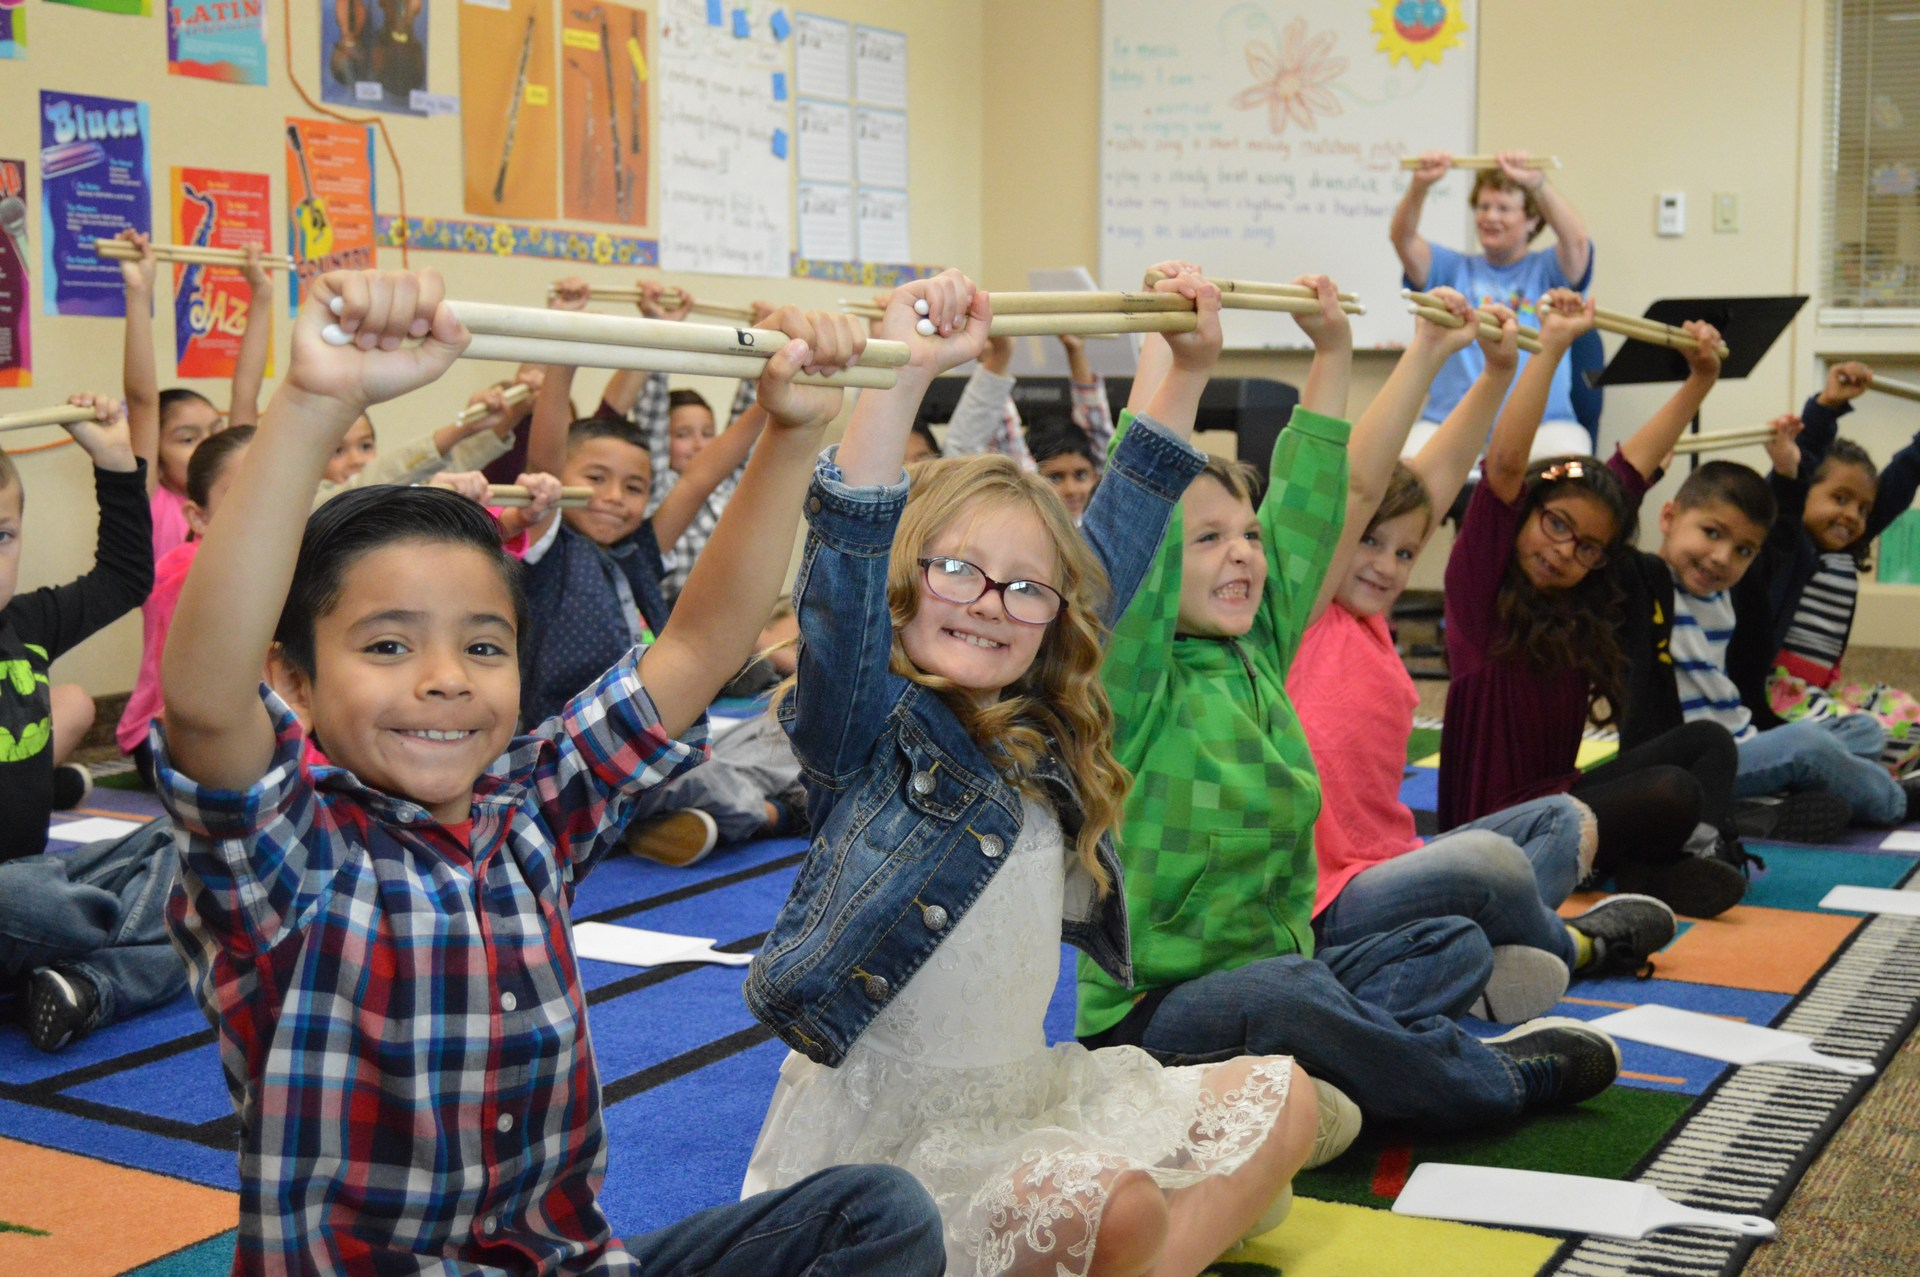 2nd grade students in a music class at THE